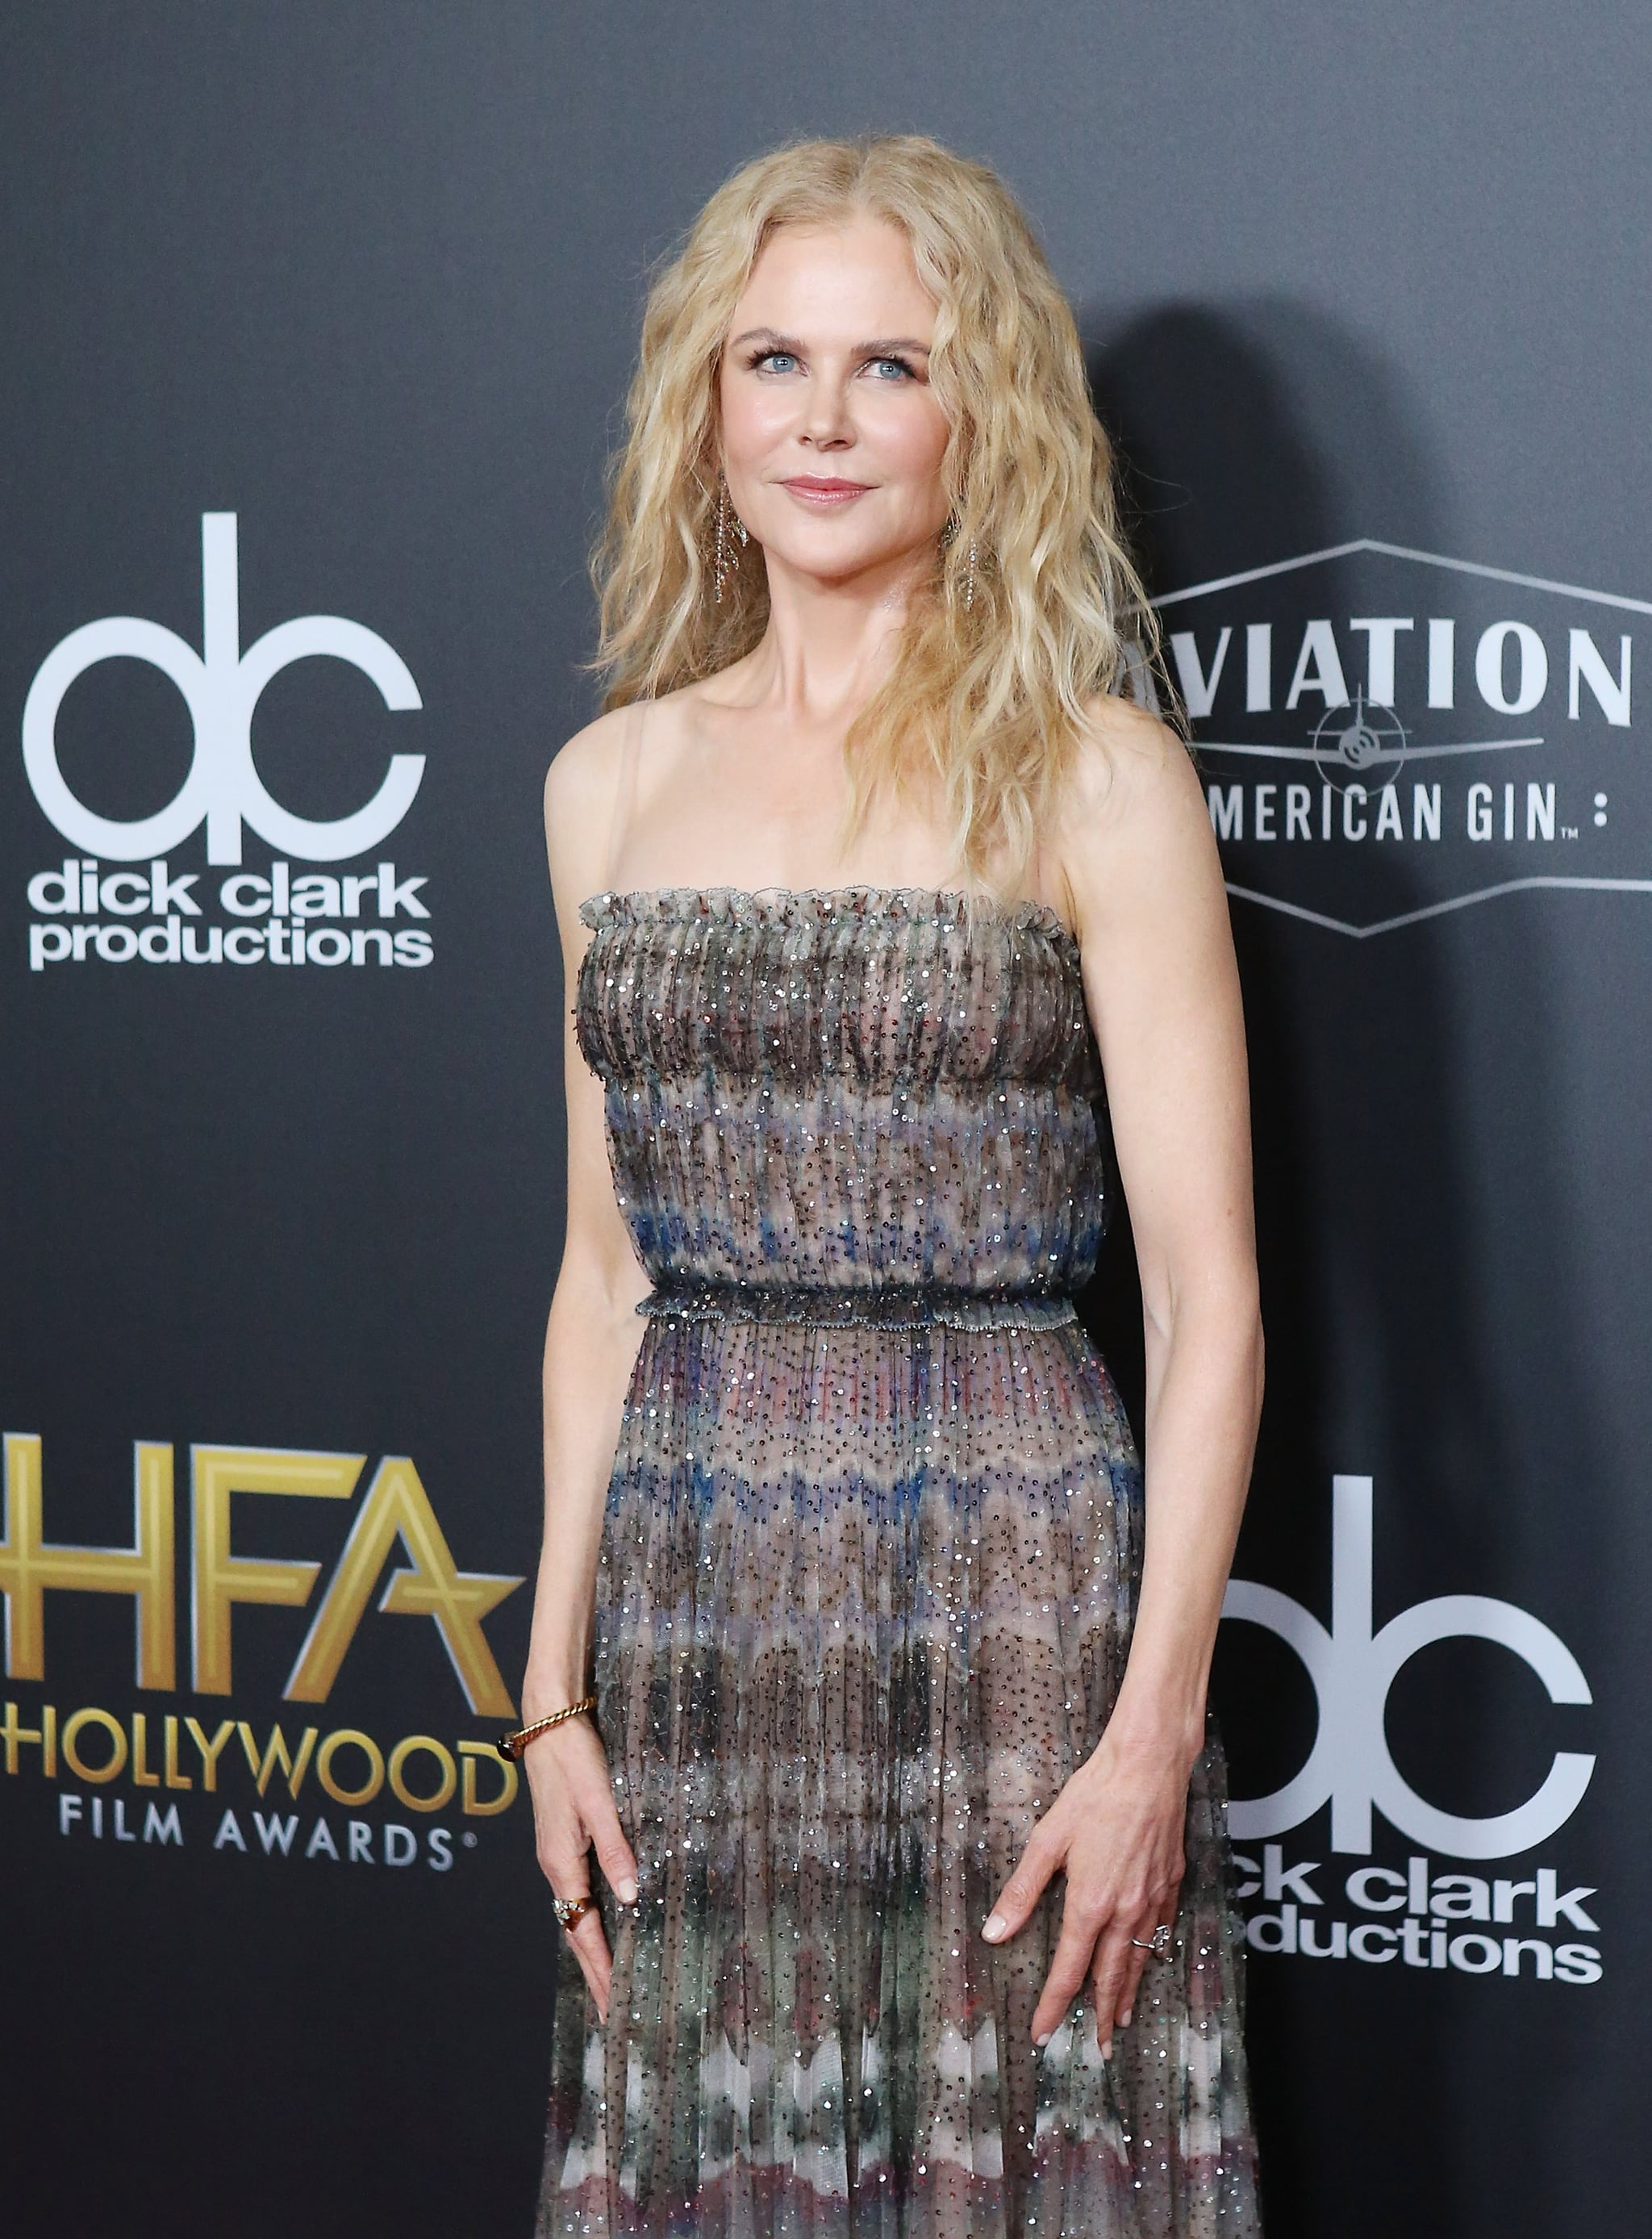 BEVERLY HILLS, CA - NOVEMBER 04:  Nicole Kidman attends the 22nd Annual Hollywood Film Awards held at The Beverly Hilton Hotel on November 4, 2018 in Beverly Hills, California.  (Photo by Michael Tran/FilmMagic,)